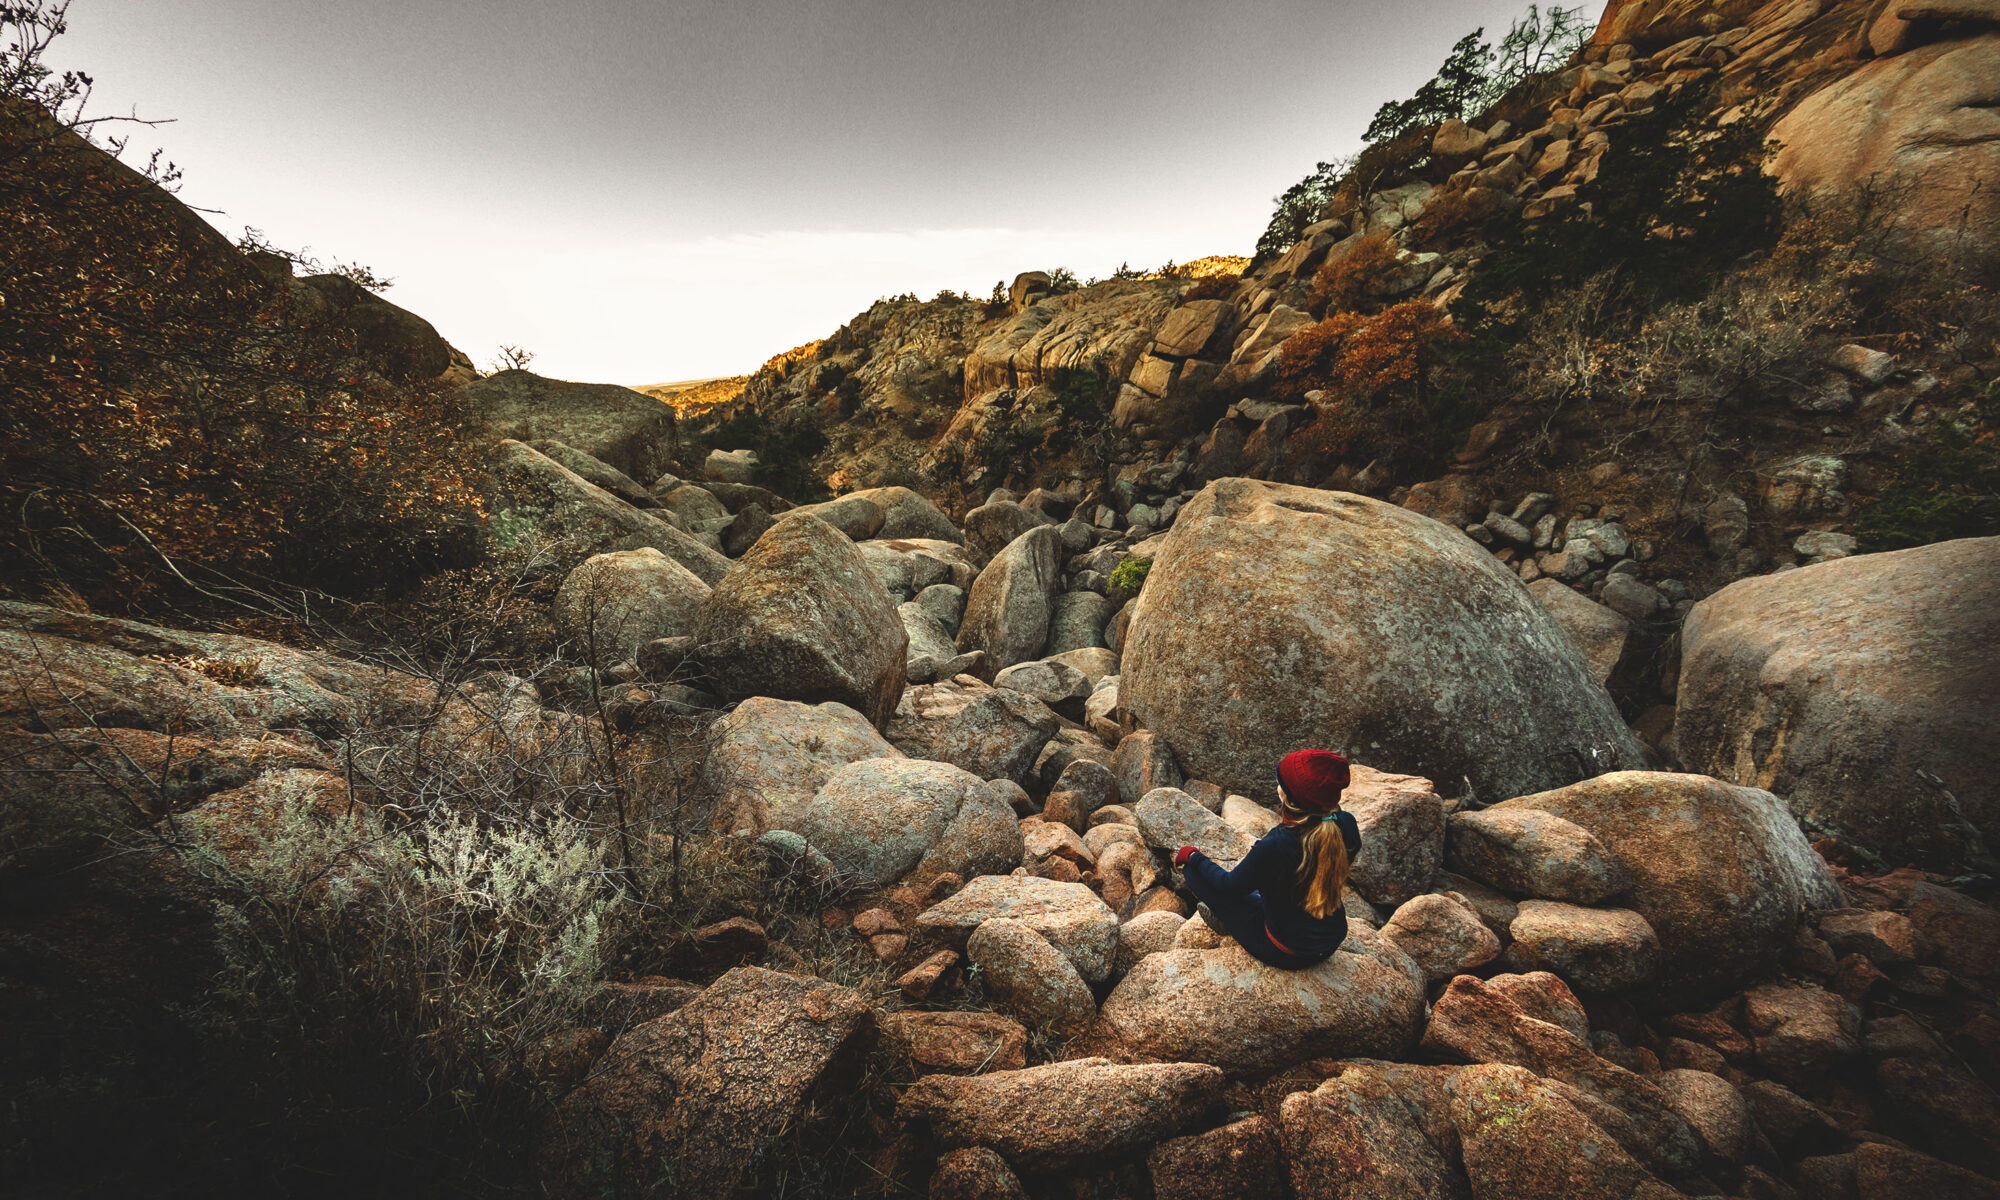 Woman sitting cross-legged overlooking the Valley of Boulders in the Wichita Mountains Wildlife Refuge.